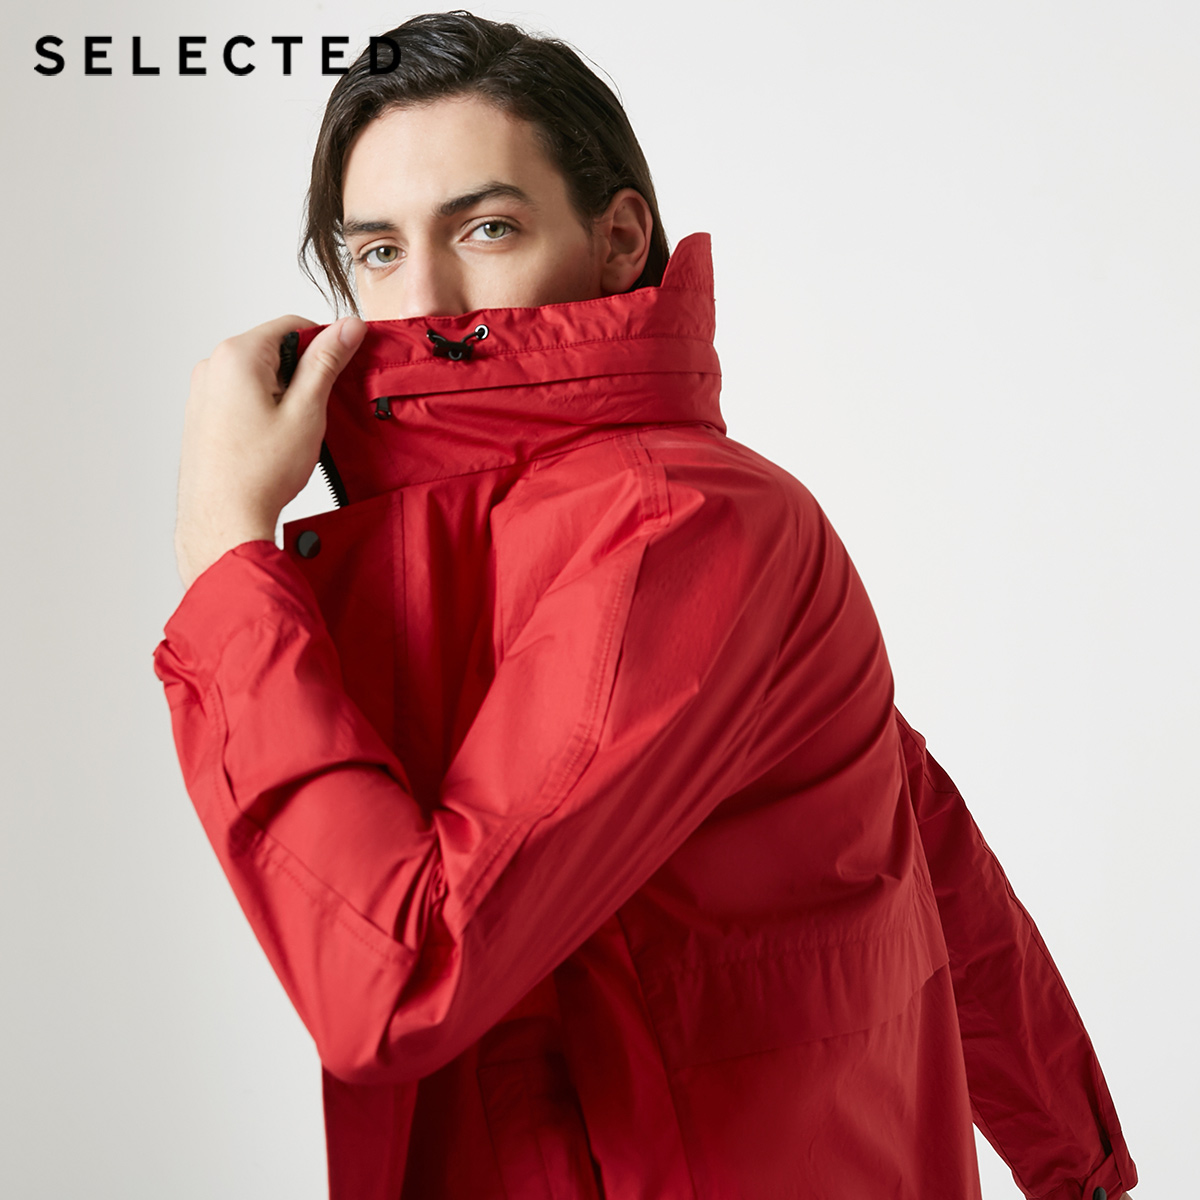 SELECTED Men's Spring Stand-up Collar Hooded With Drawstring Coat S|419121519